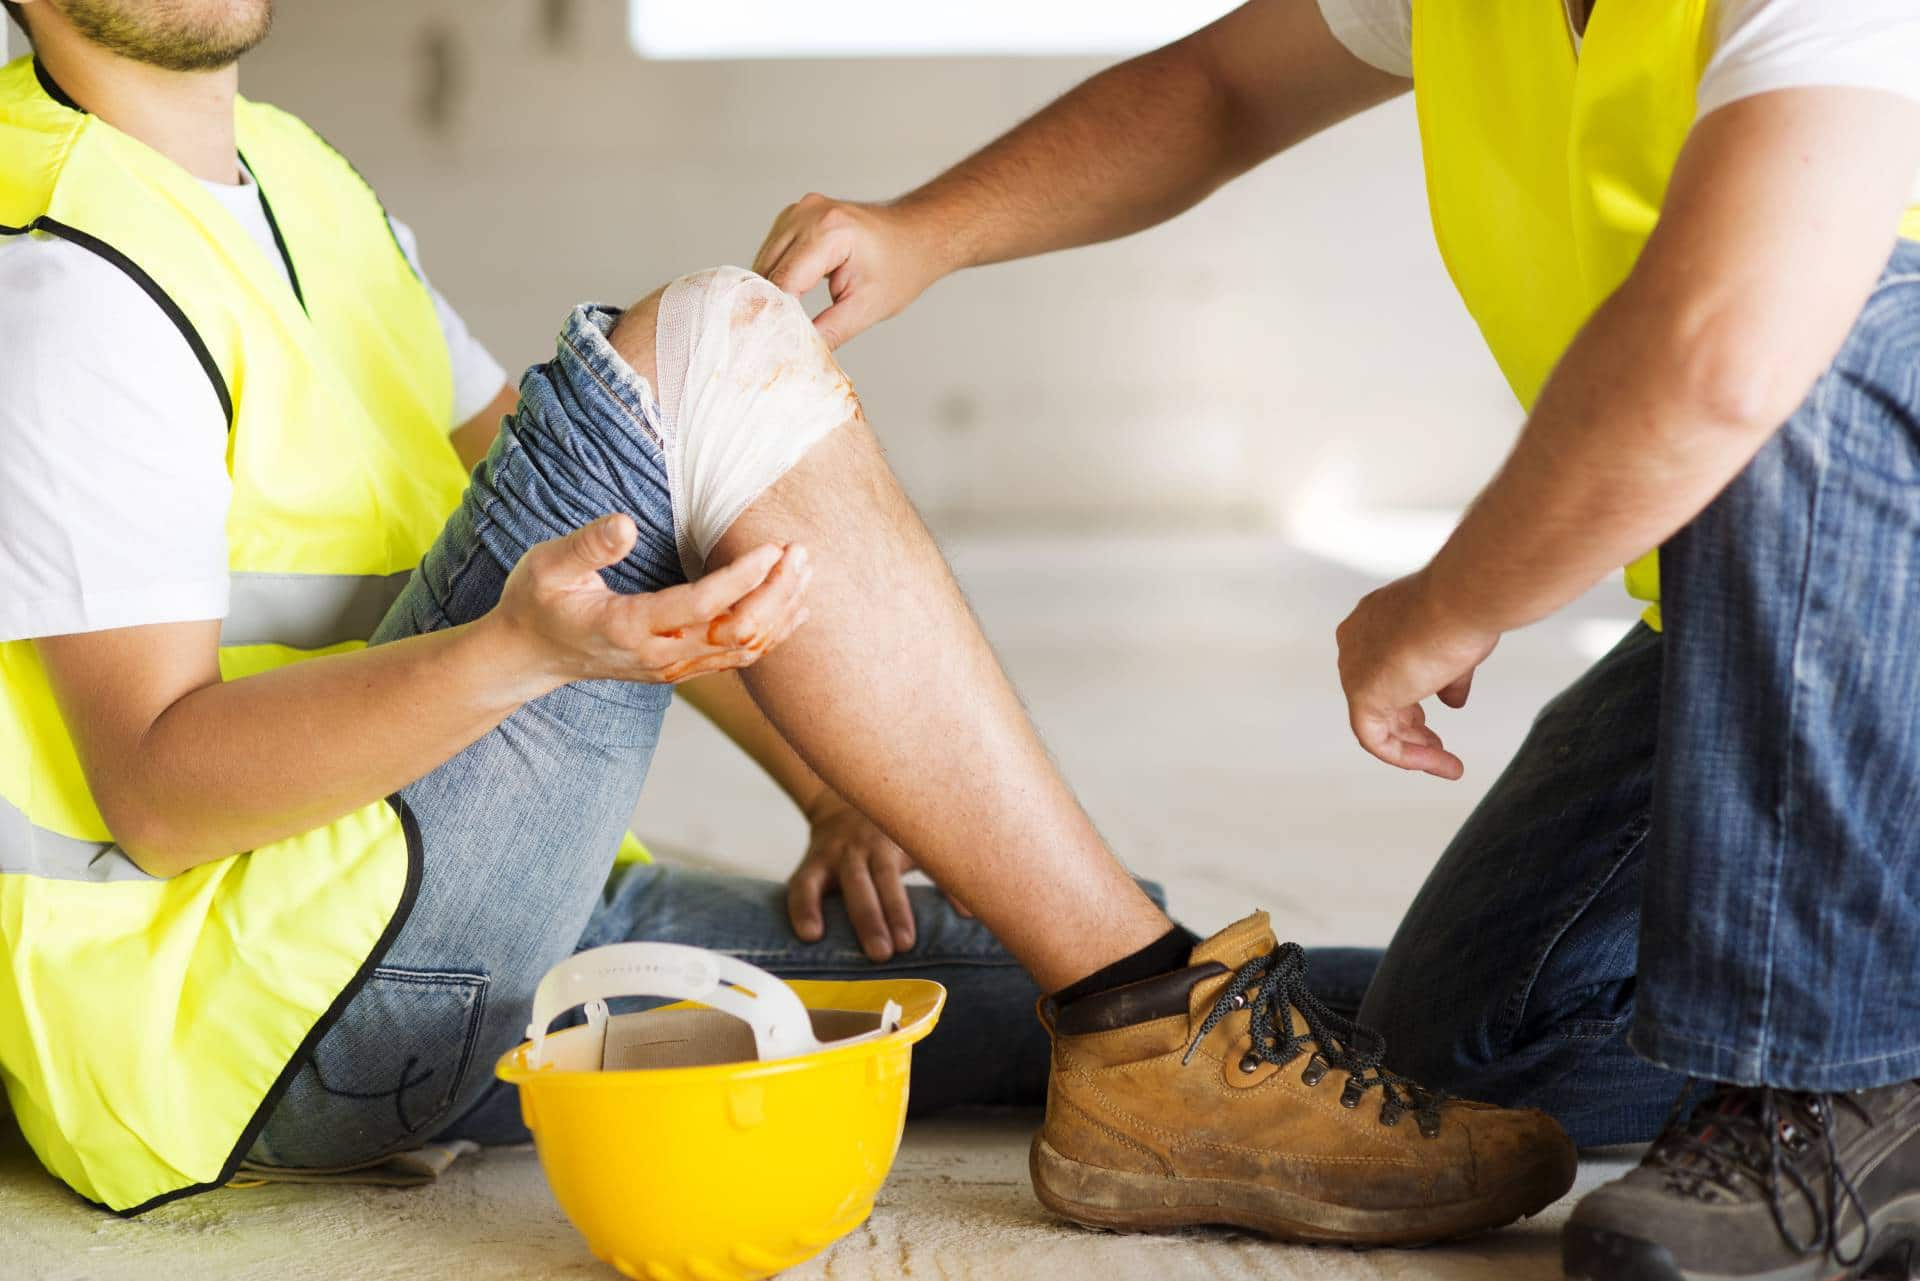 Hurt on the job? Schedule a free consultation with our personal injury lawyers at the Angell Law Firm in West Paces Ferry.